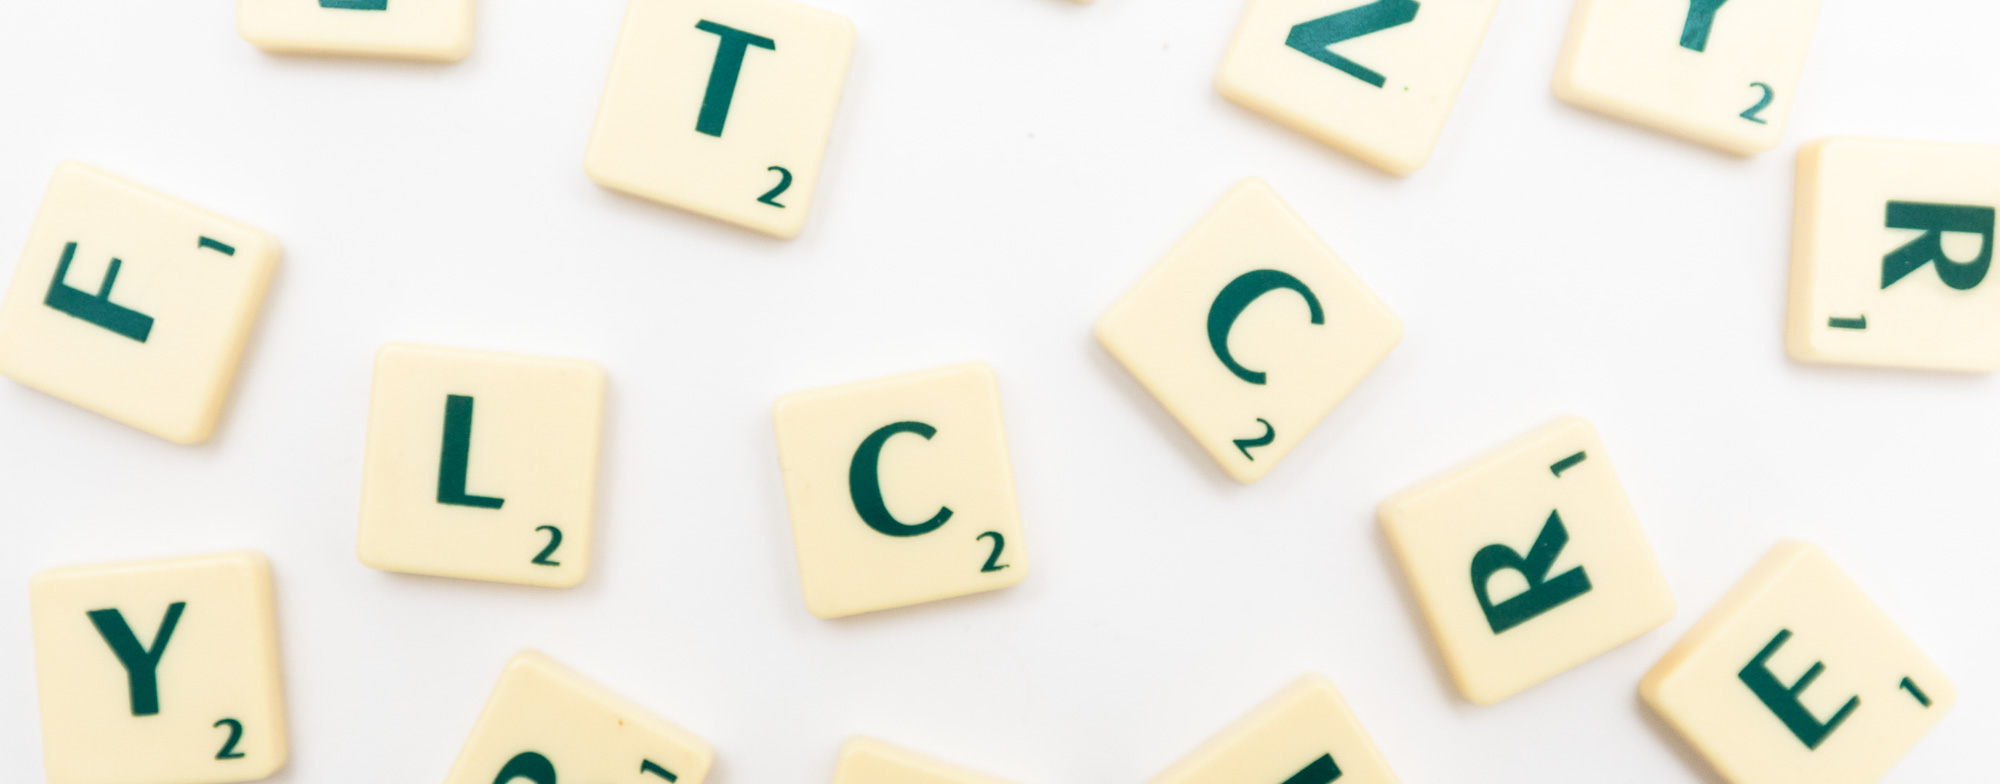 AZ glossary scrabble letters